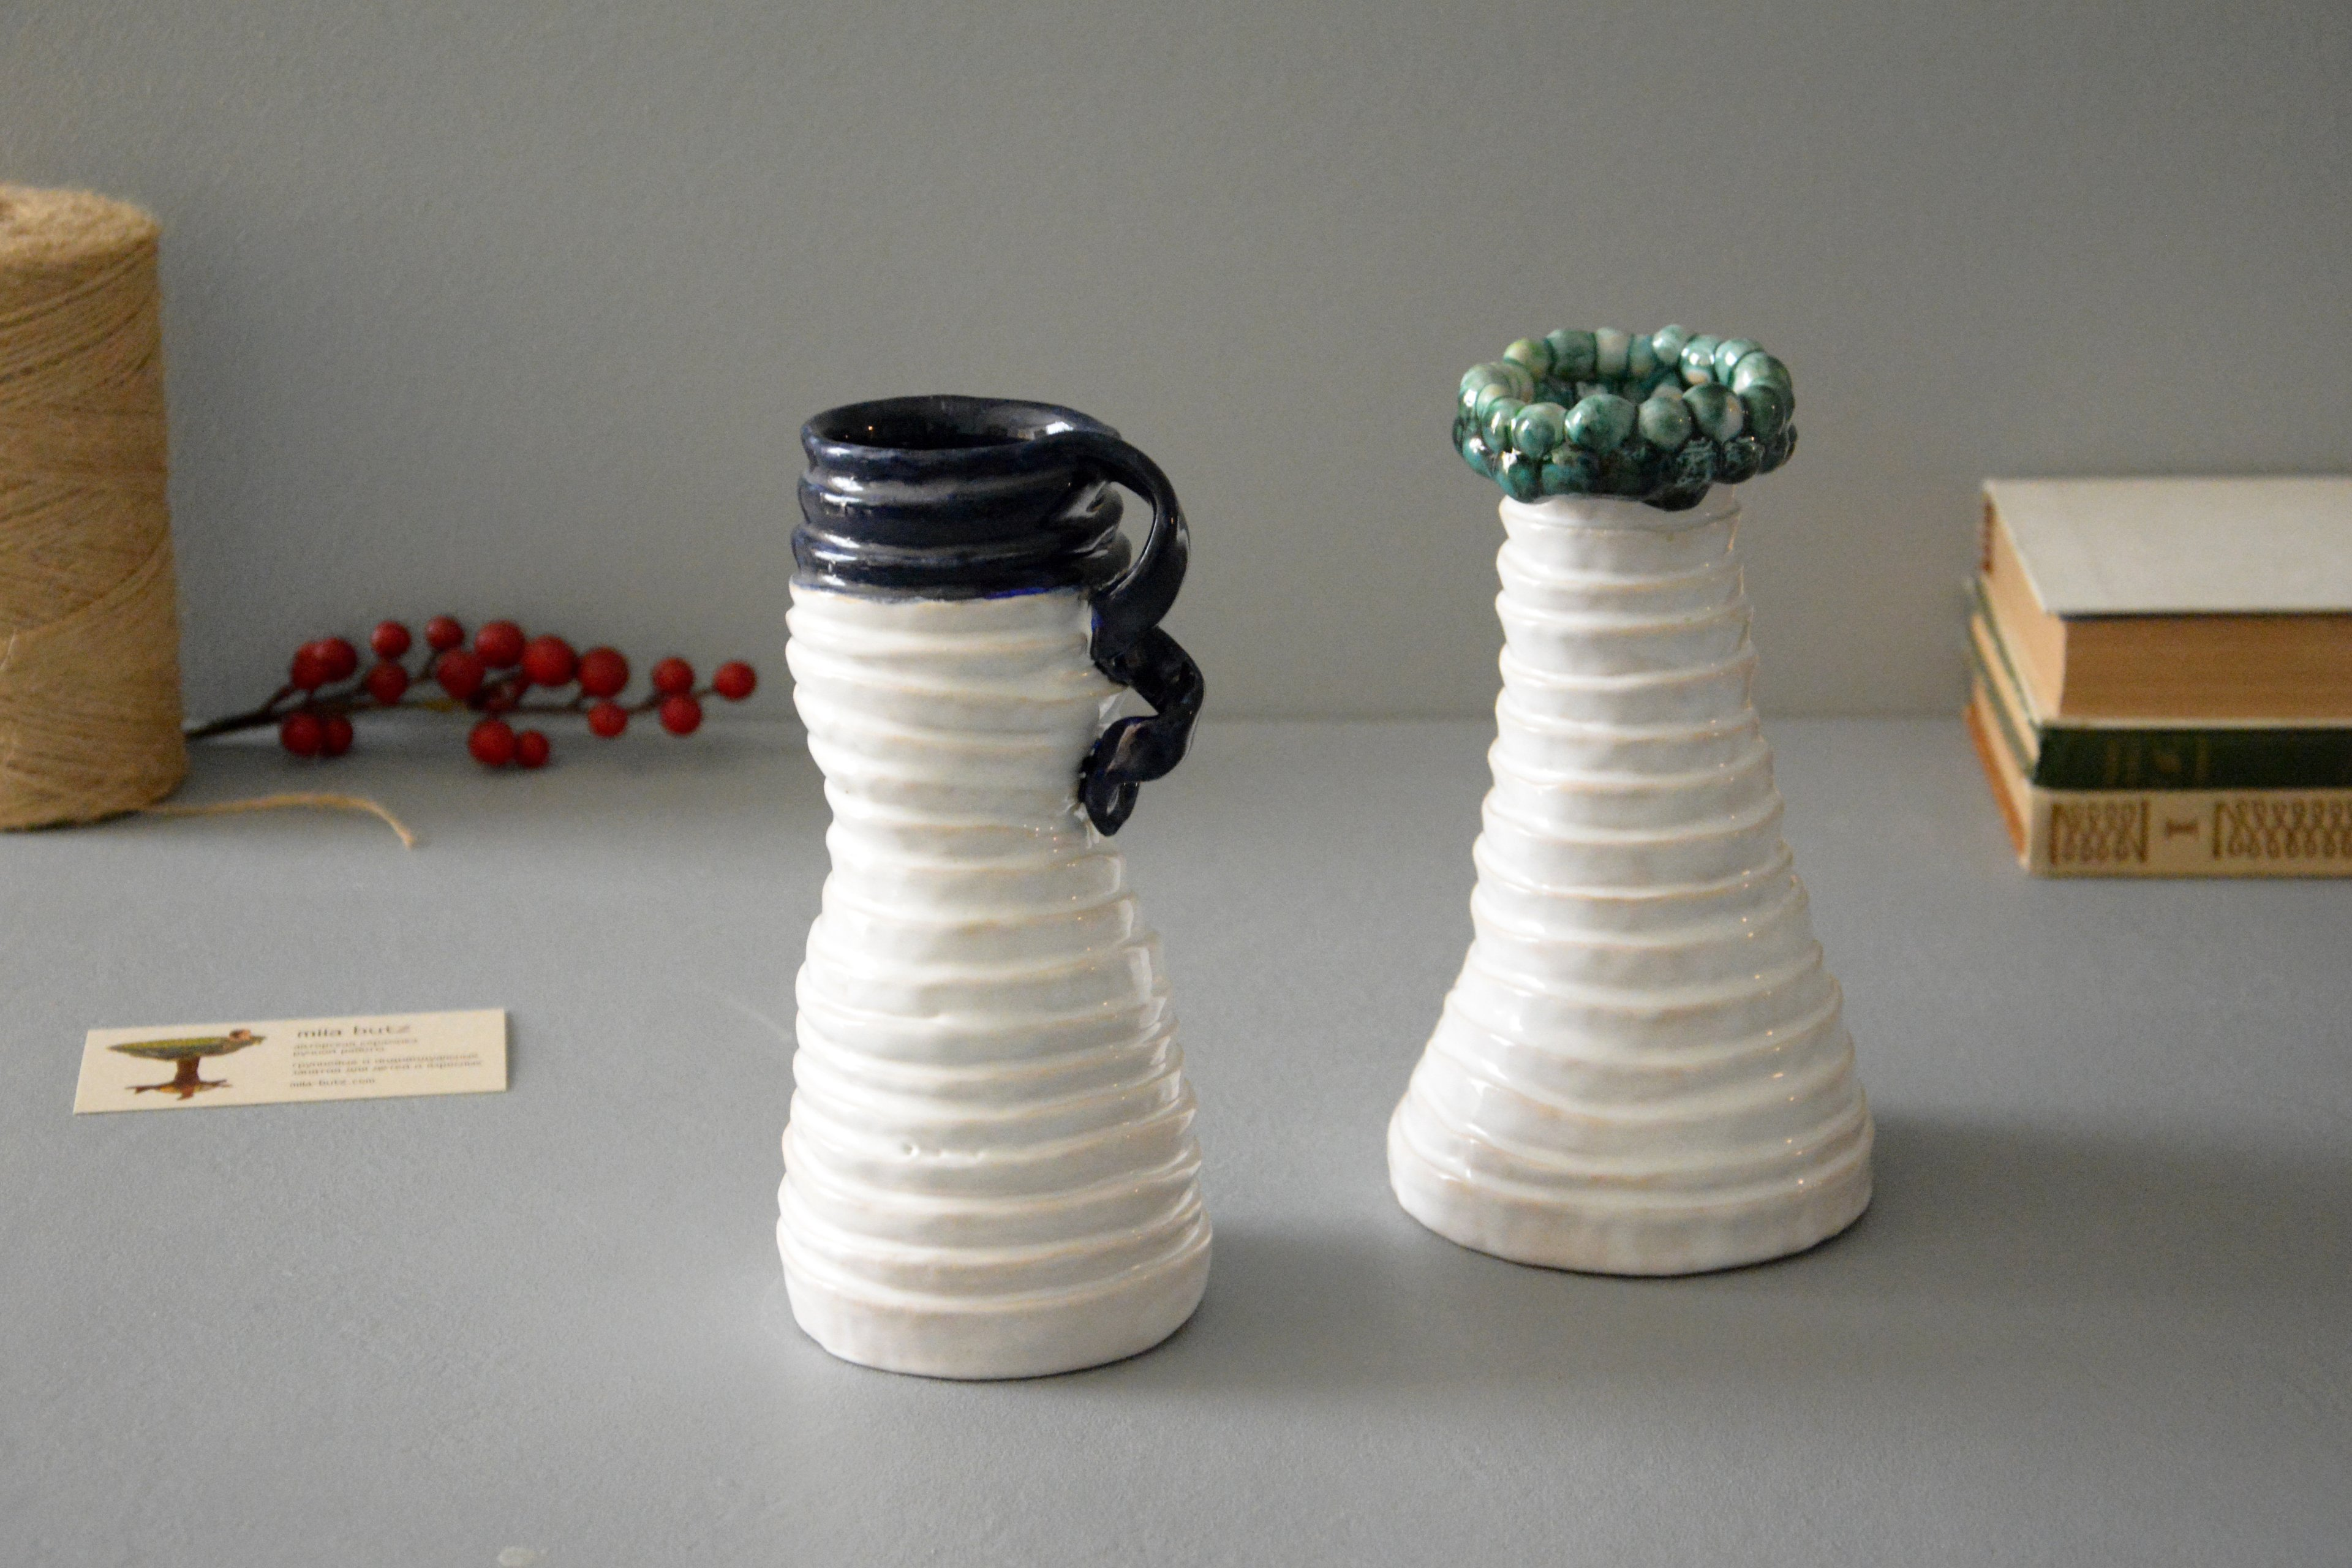 White-blue ceramic vase «Tourniquets and webbing», height - 18 cm, color - white, photo 5 of 7. 1233.